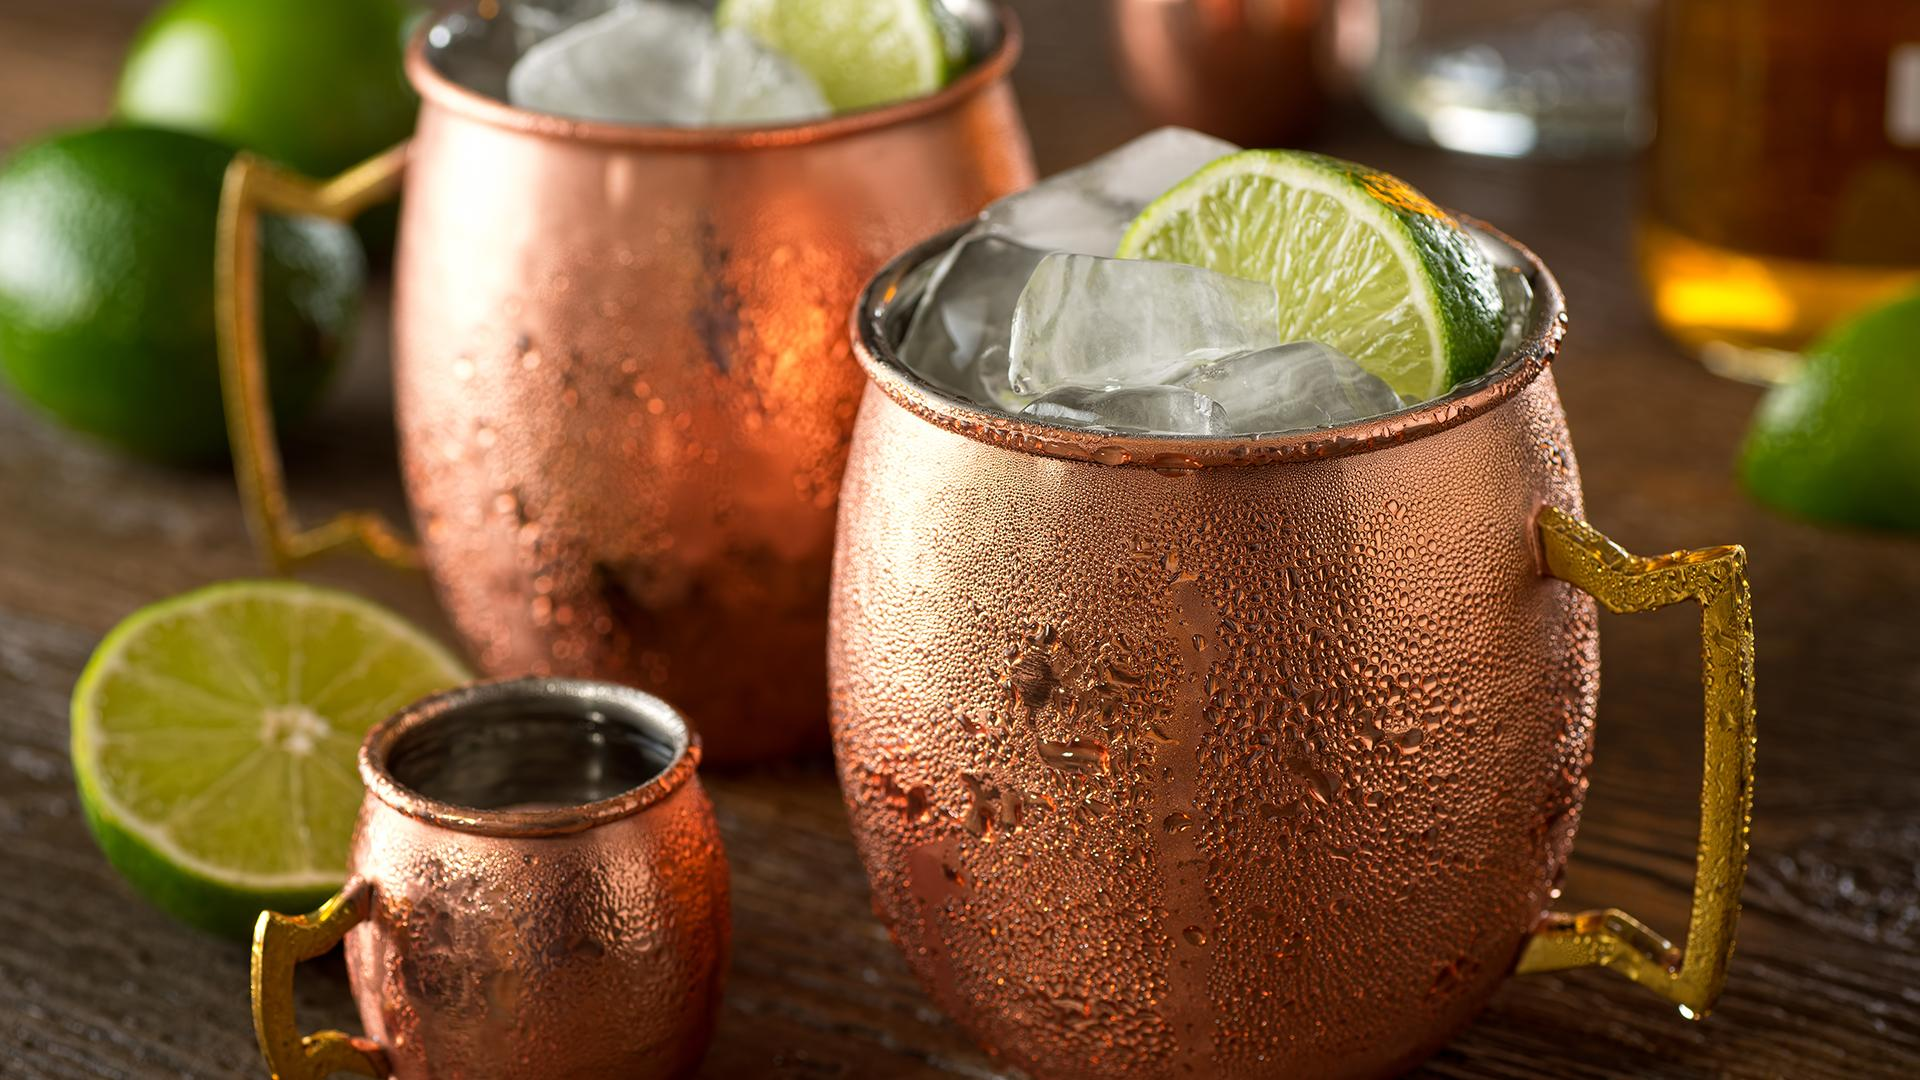 Unique Cocktail recipes to mix up at Home